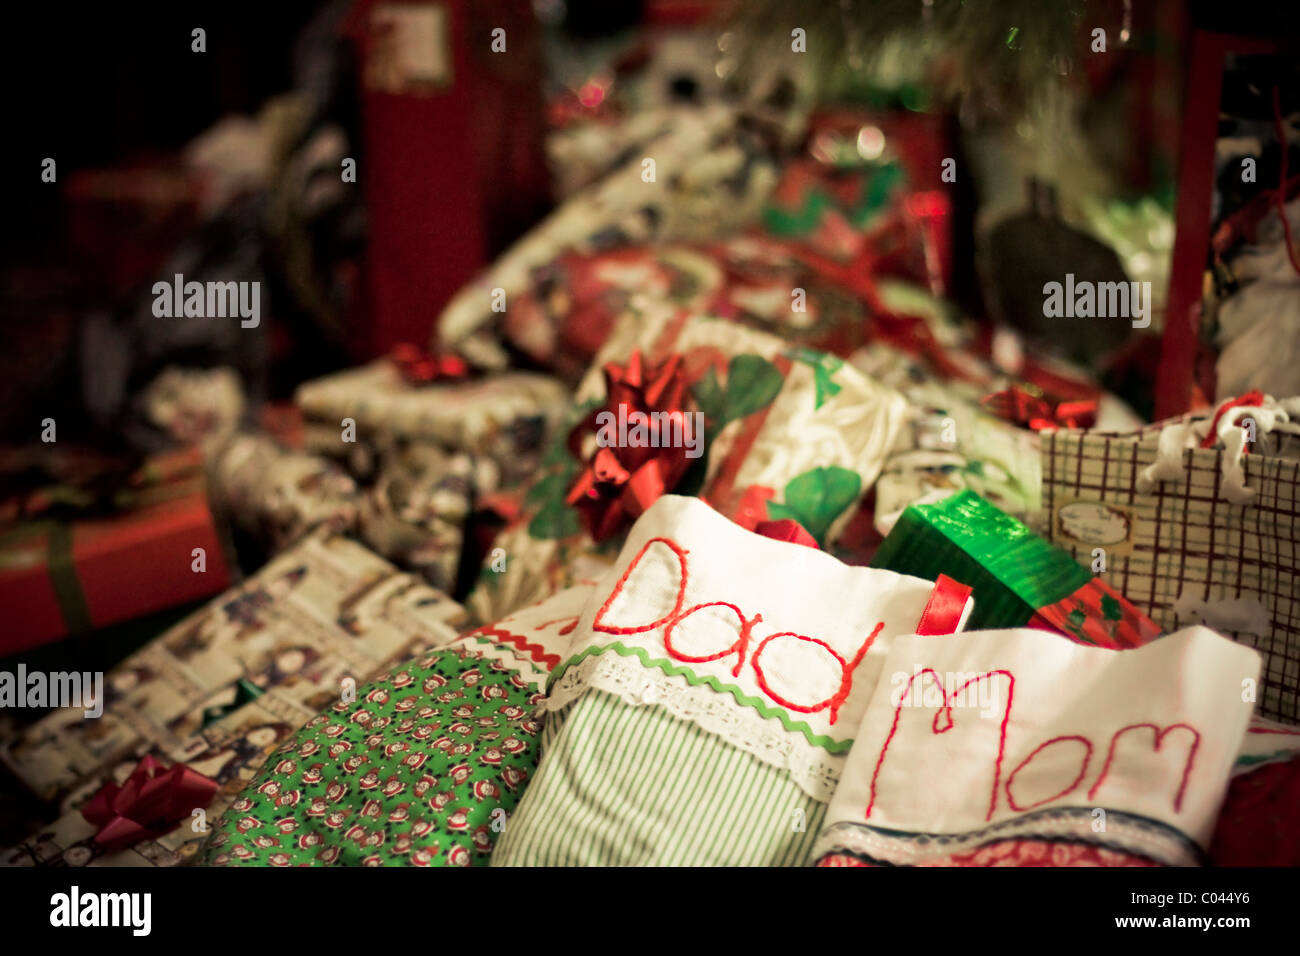 A Pile Of Wrapped Christmas Gifts And Stuffed Hand Embroidered Stockings Under The Tree